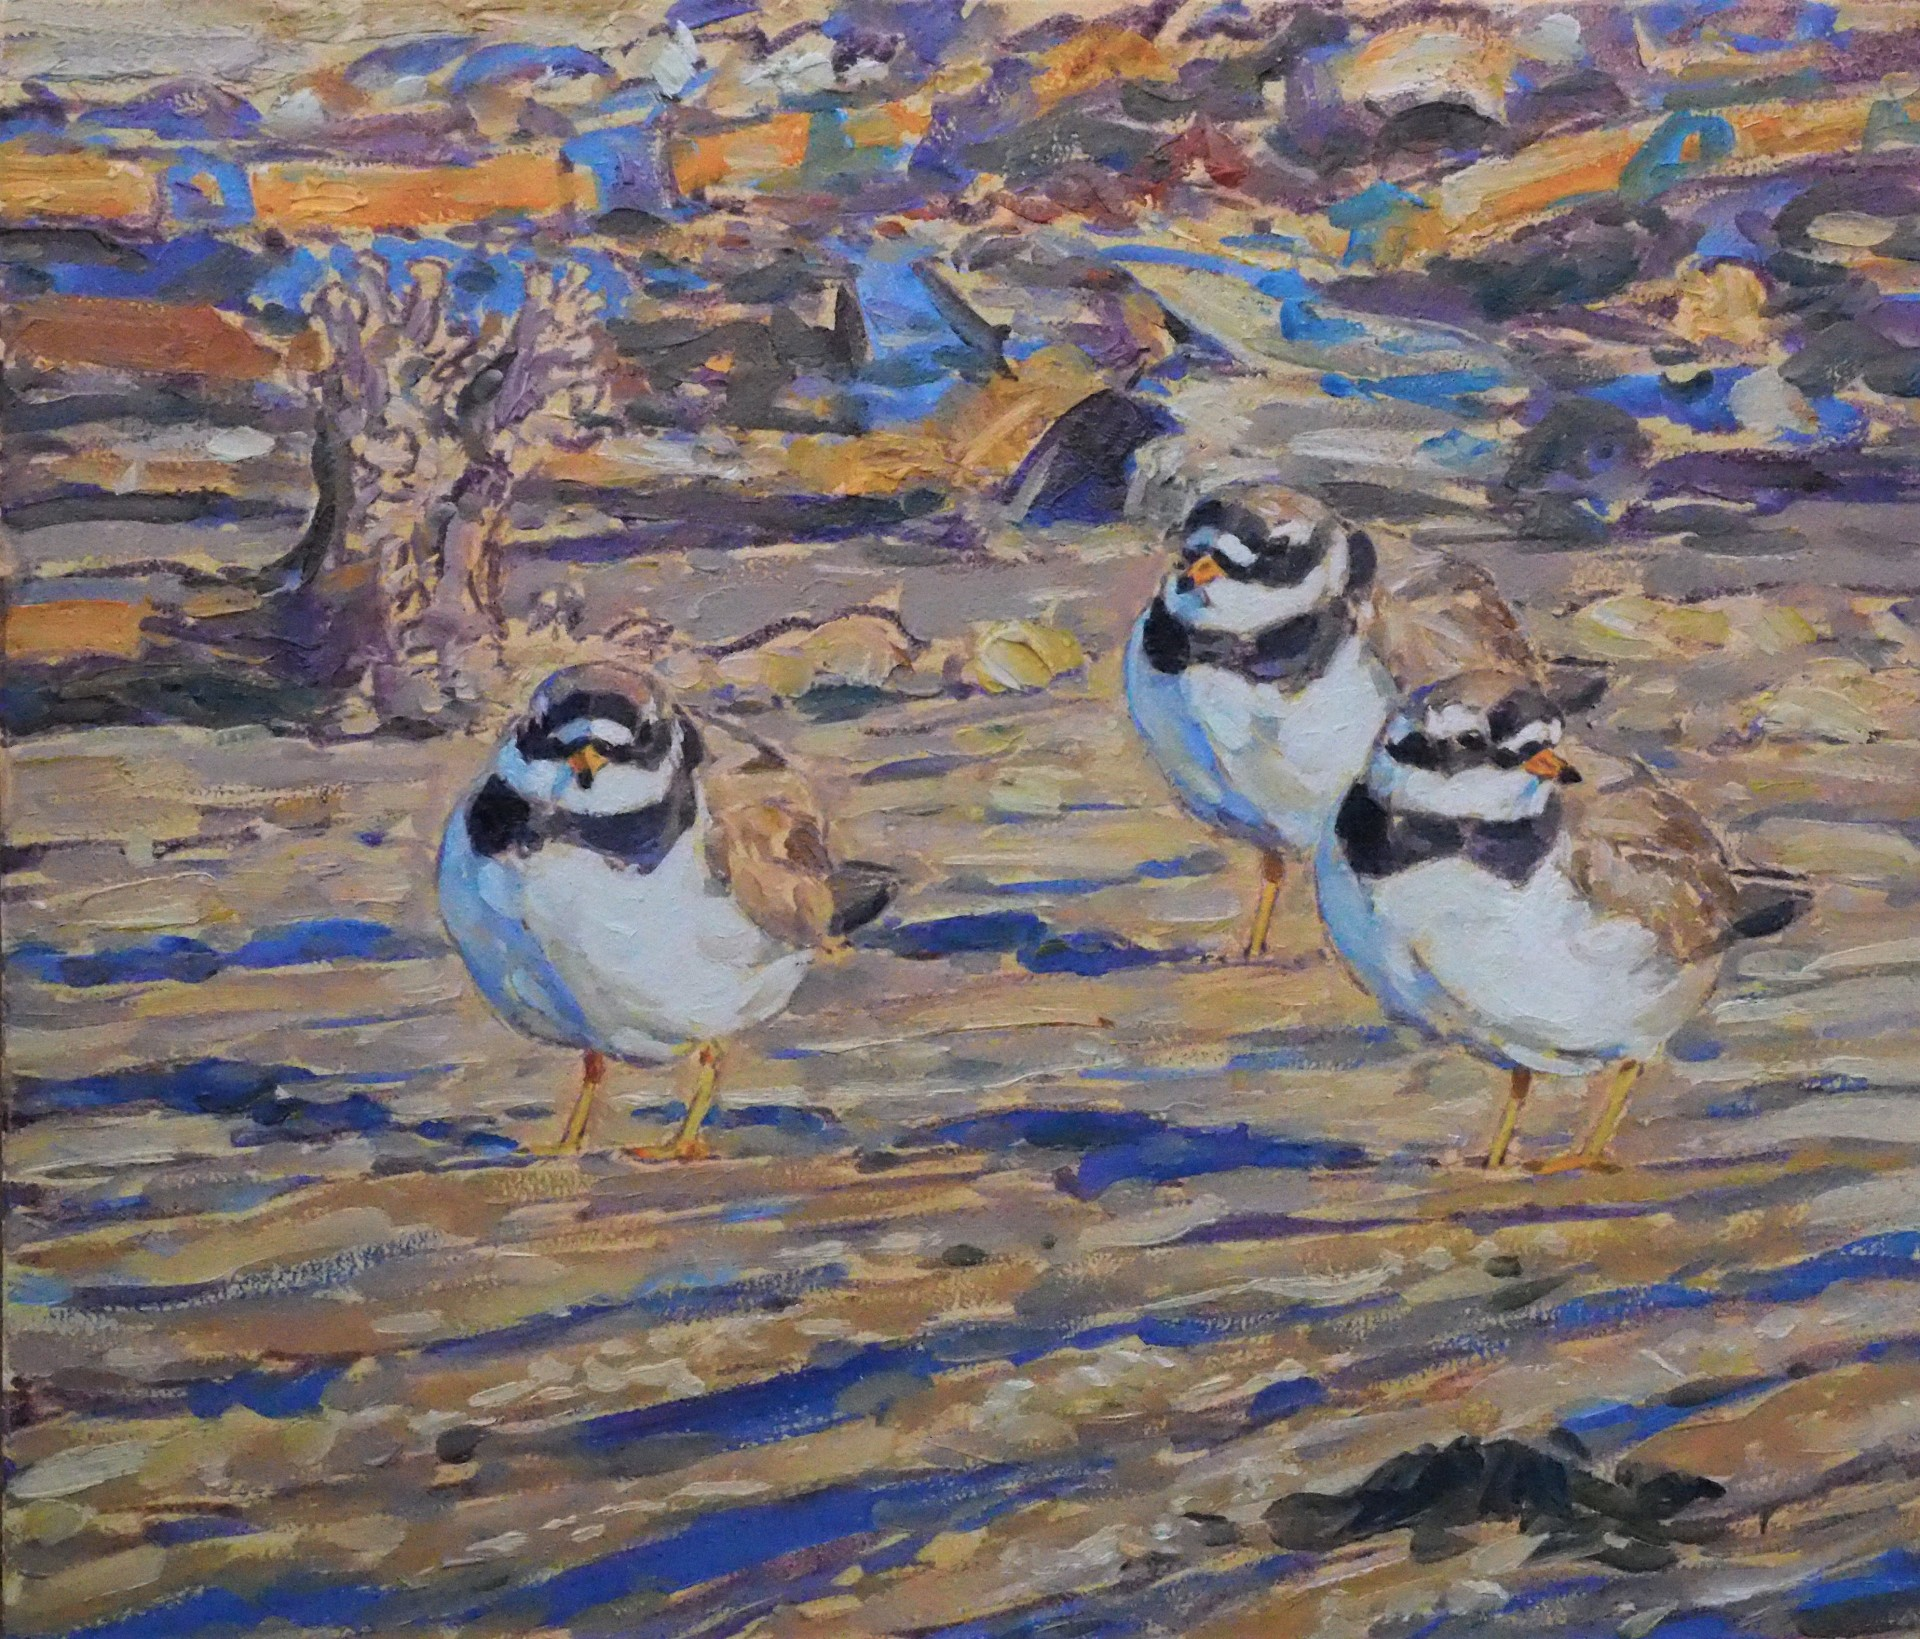 Ringed Plovers and Kelp, Seahouses, Northumberland